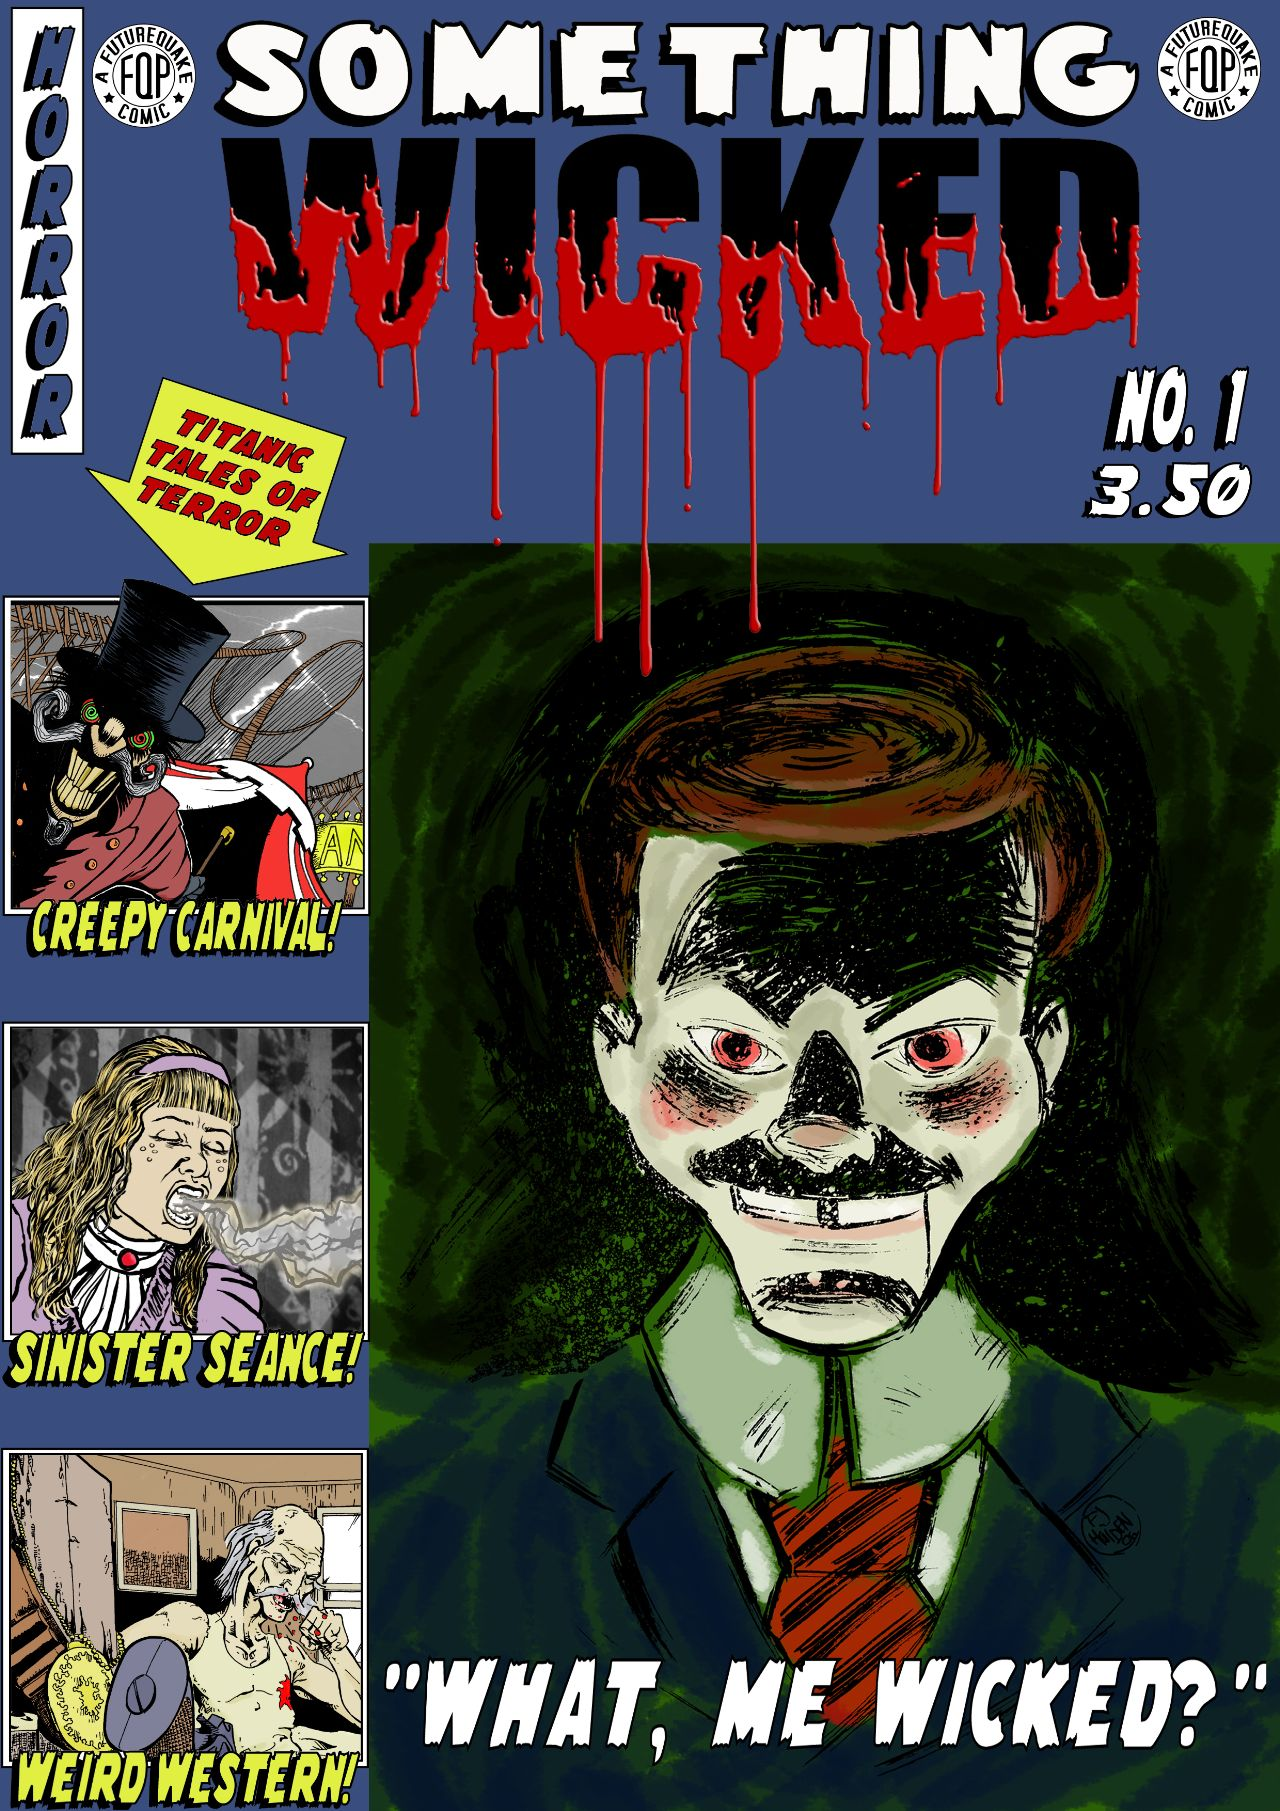 Something Wicked Issue One - Cover